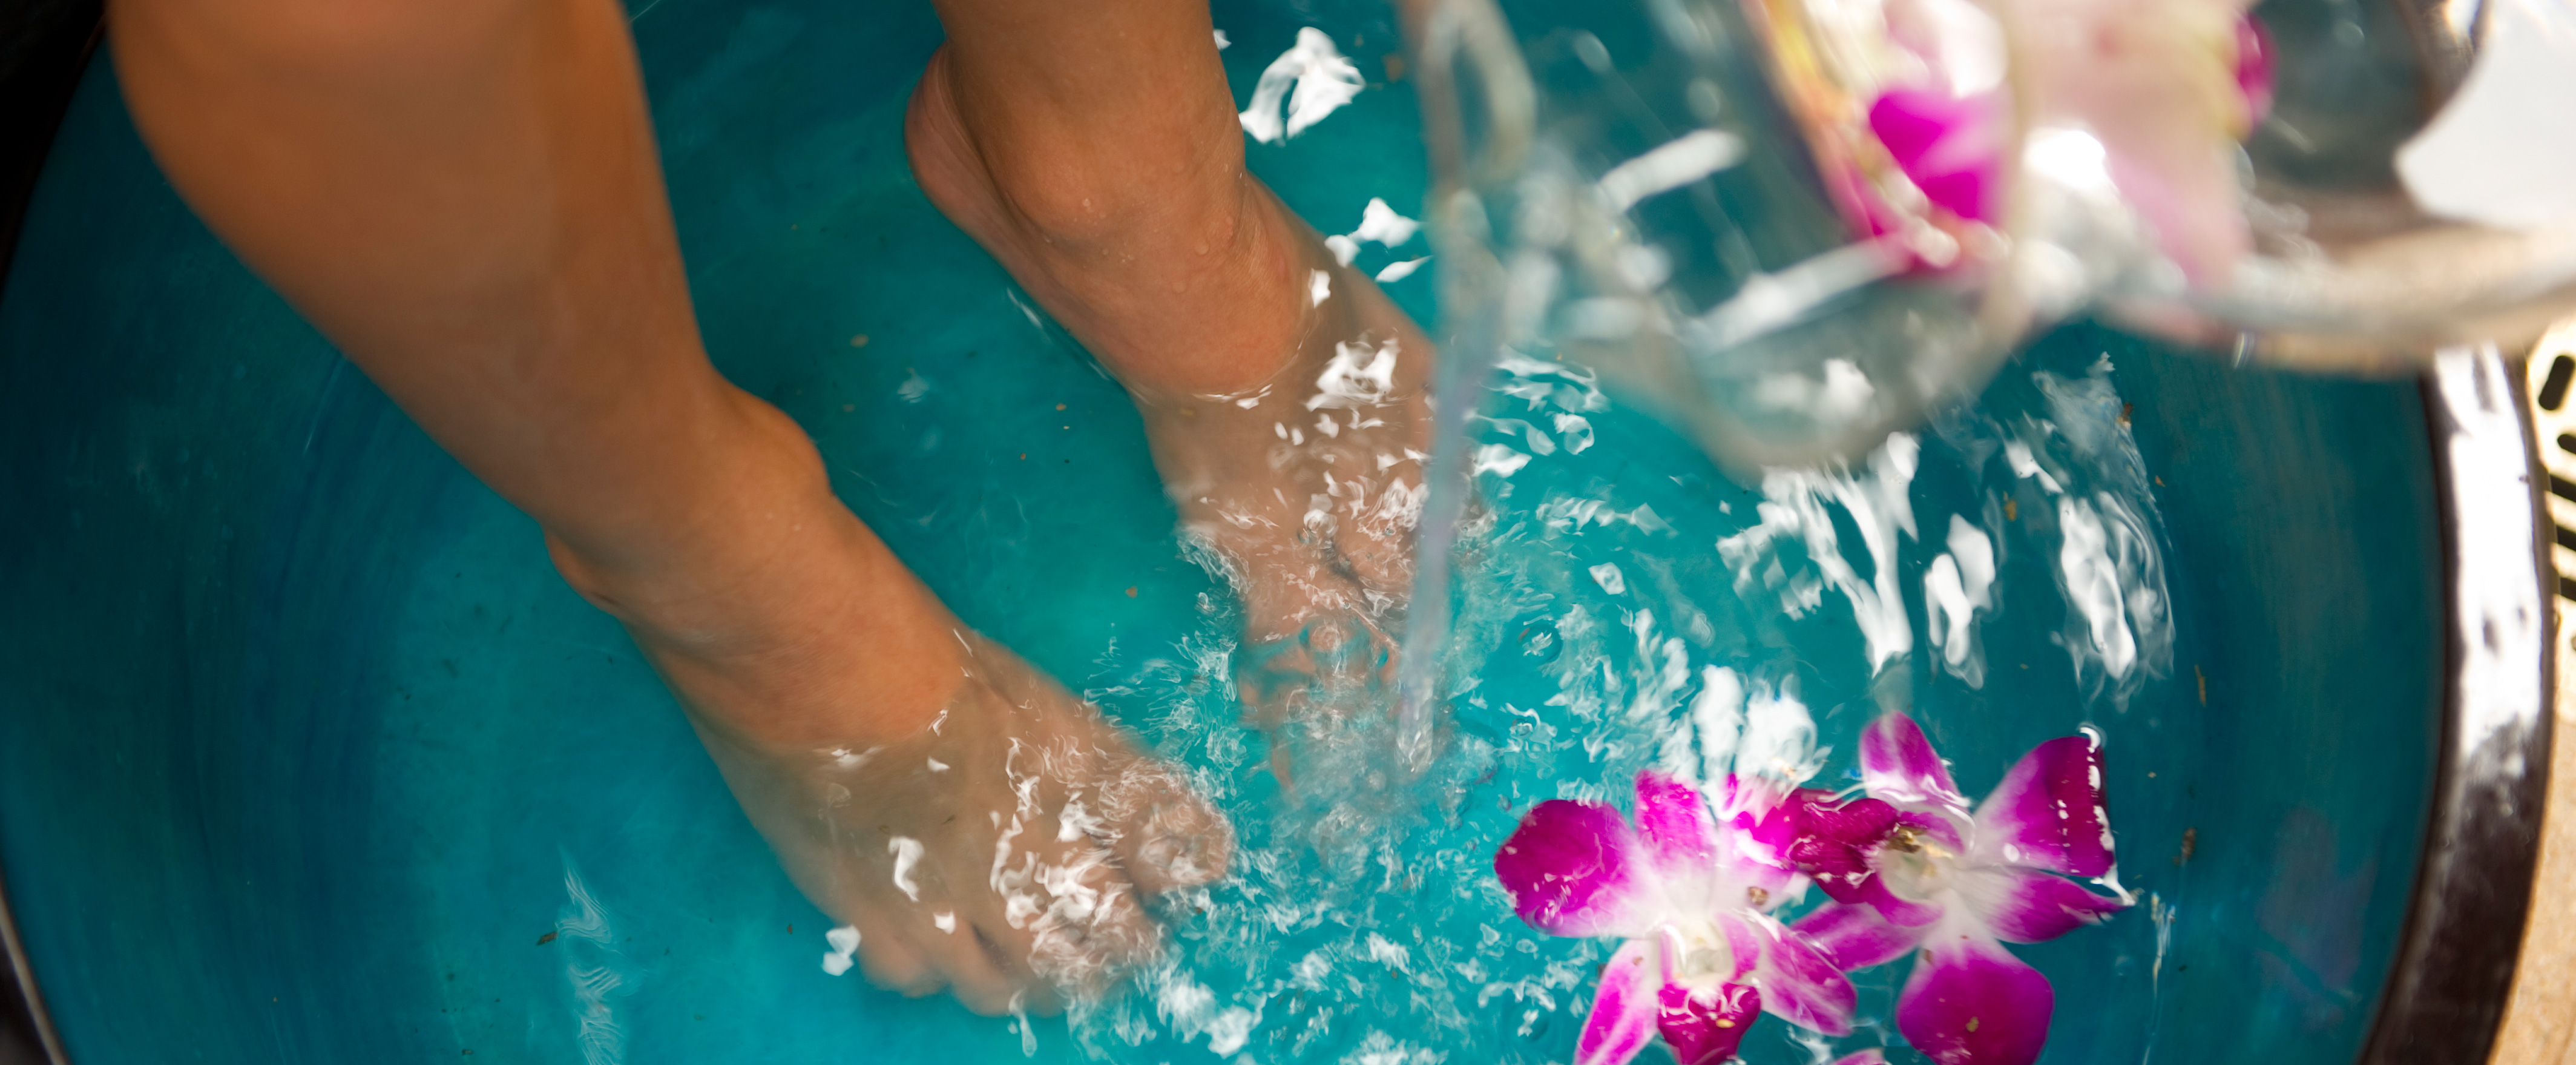 Feet in a large water-filled basin with floating fuchsia orchids as more water pours in